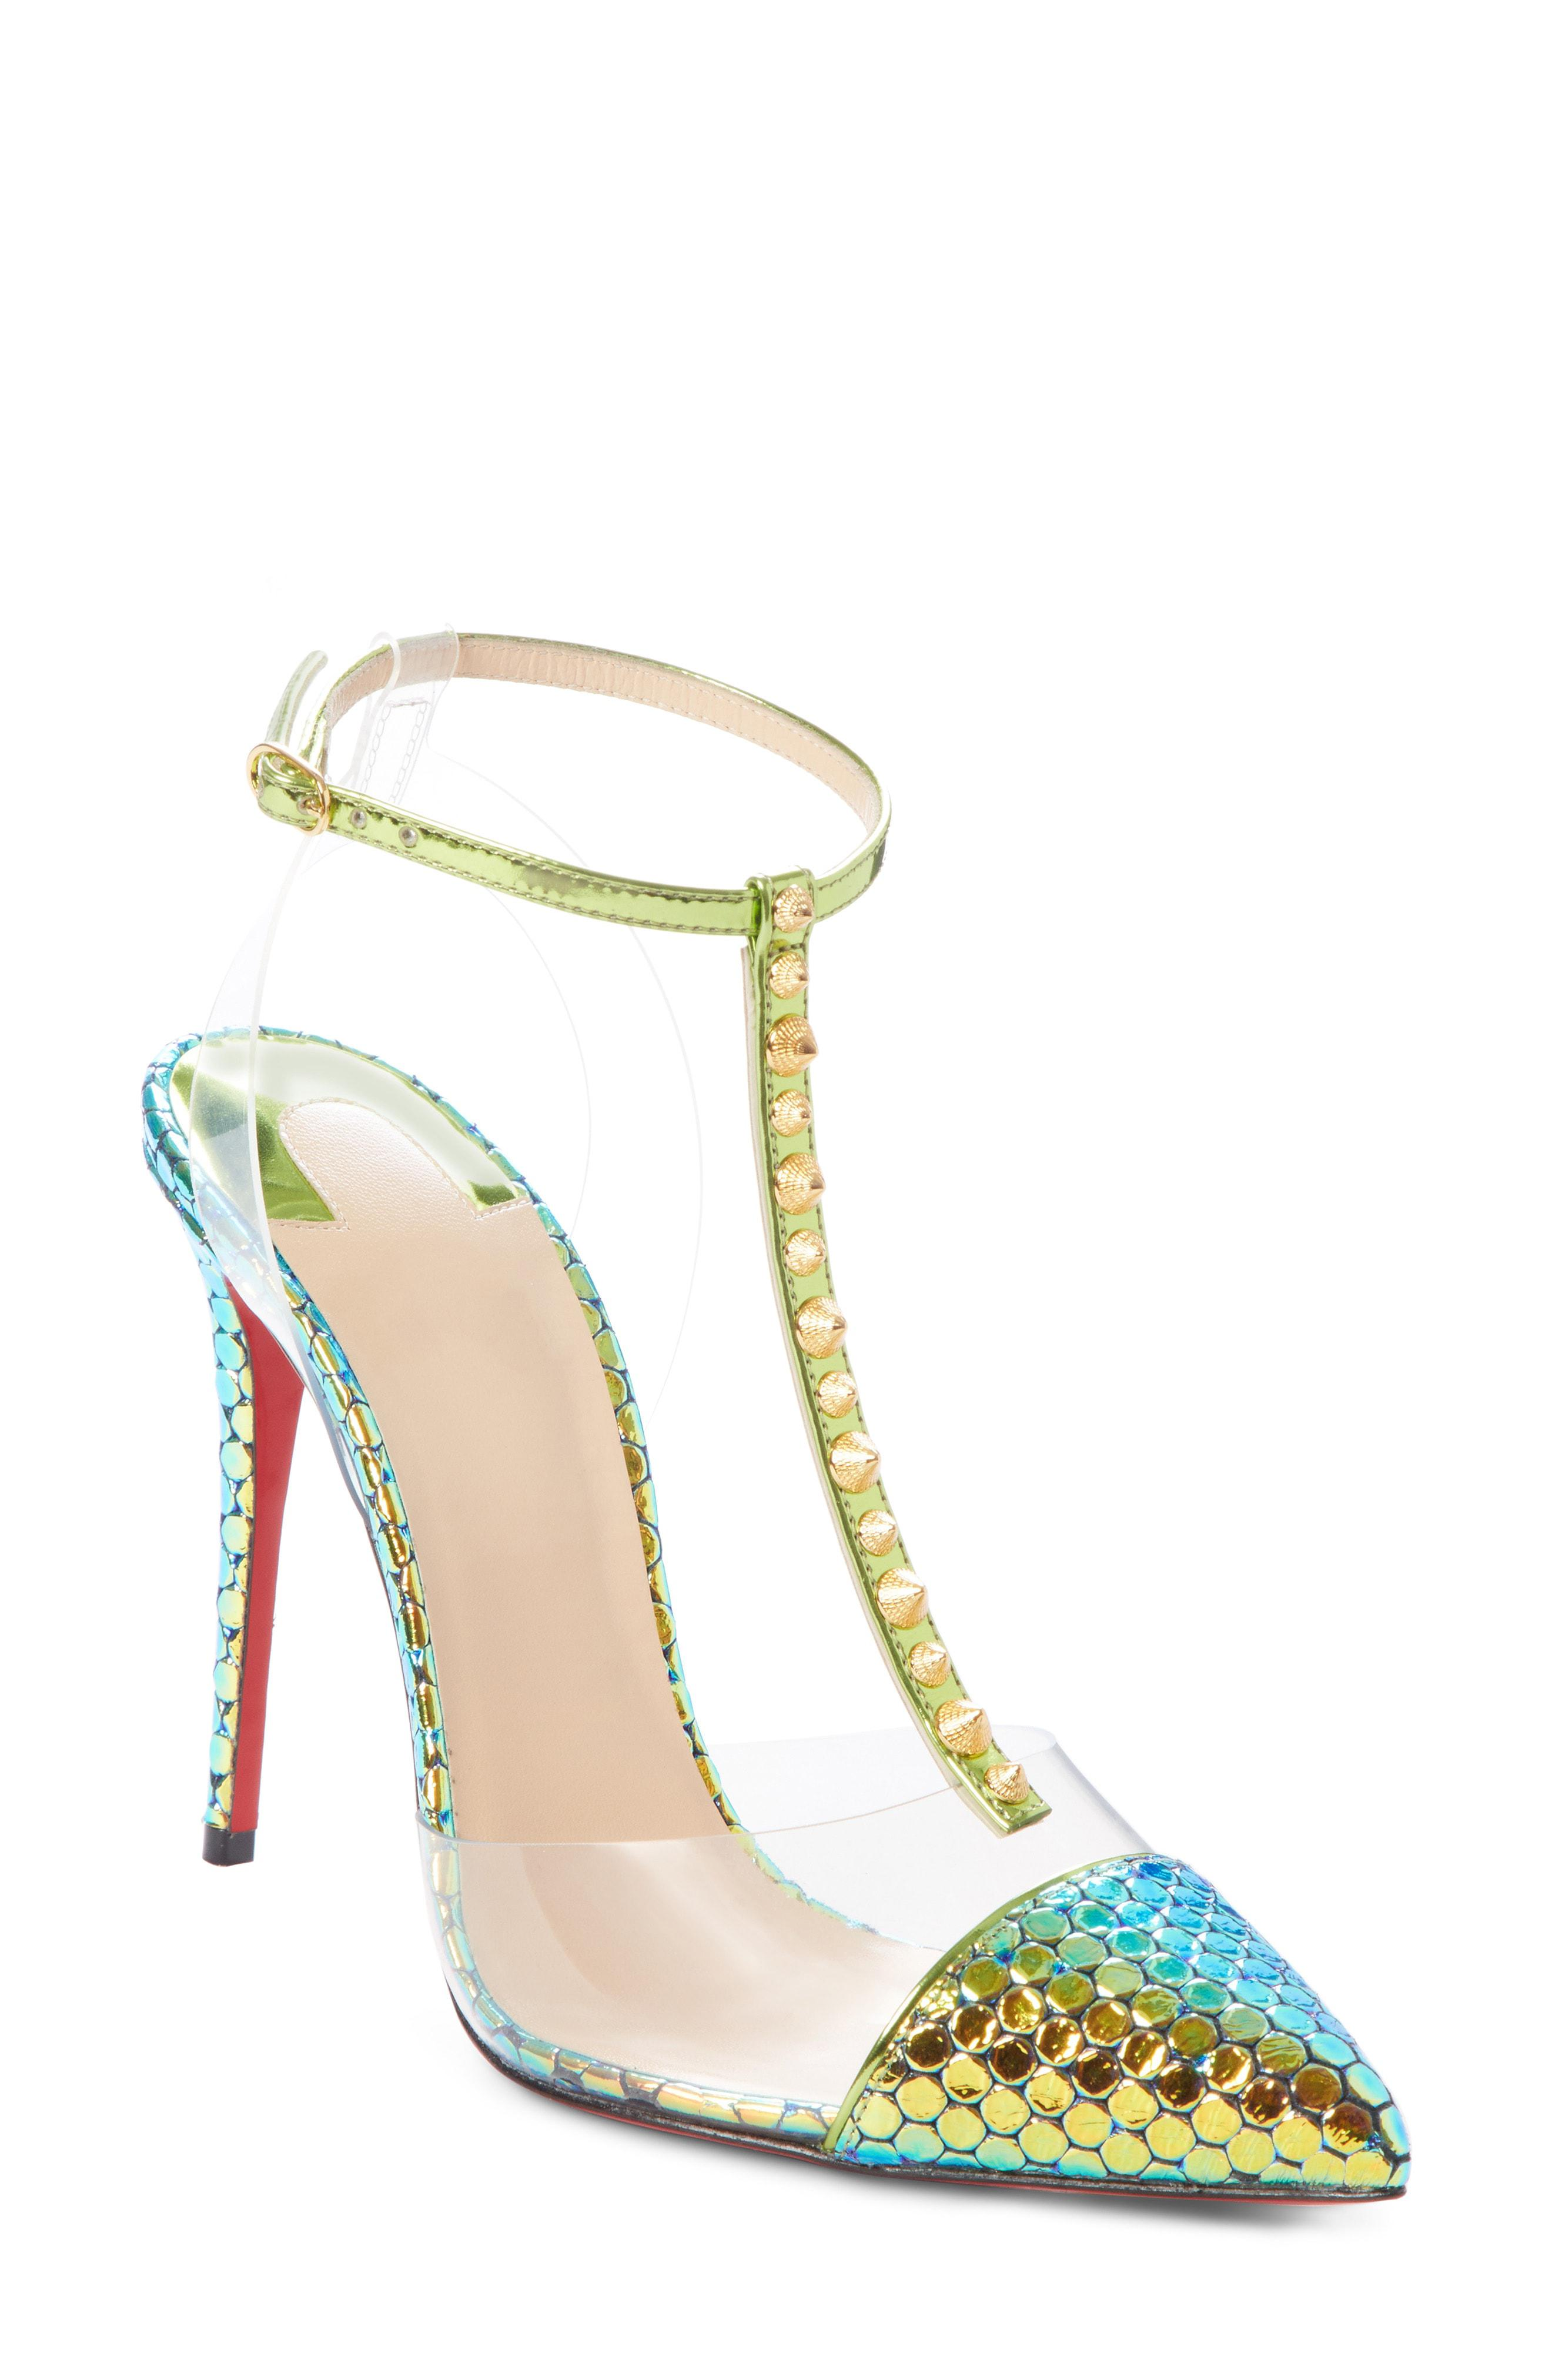 469d2987242d Christian Louboutin Nosy Spikes T-strap Pump in Green - Lyst